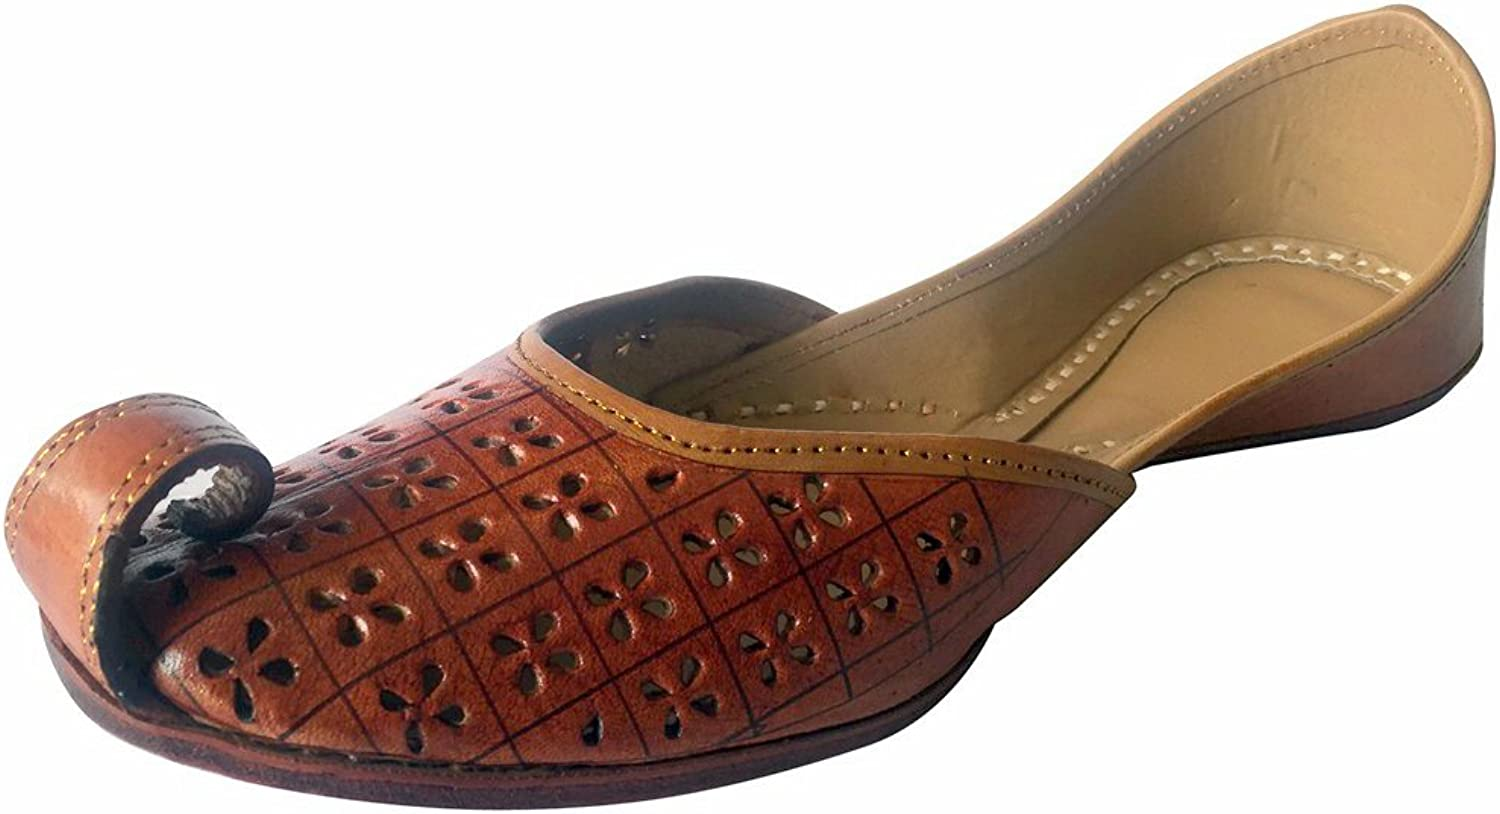 Step n Style Handmade Embroidered Women Sandal Flip Flop Style Traditional Bronze